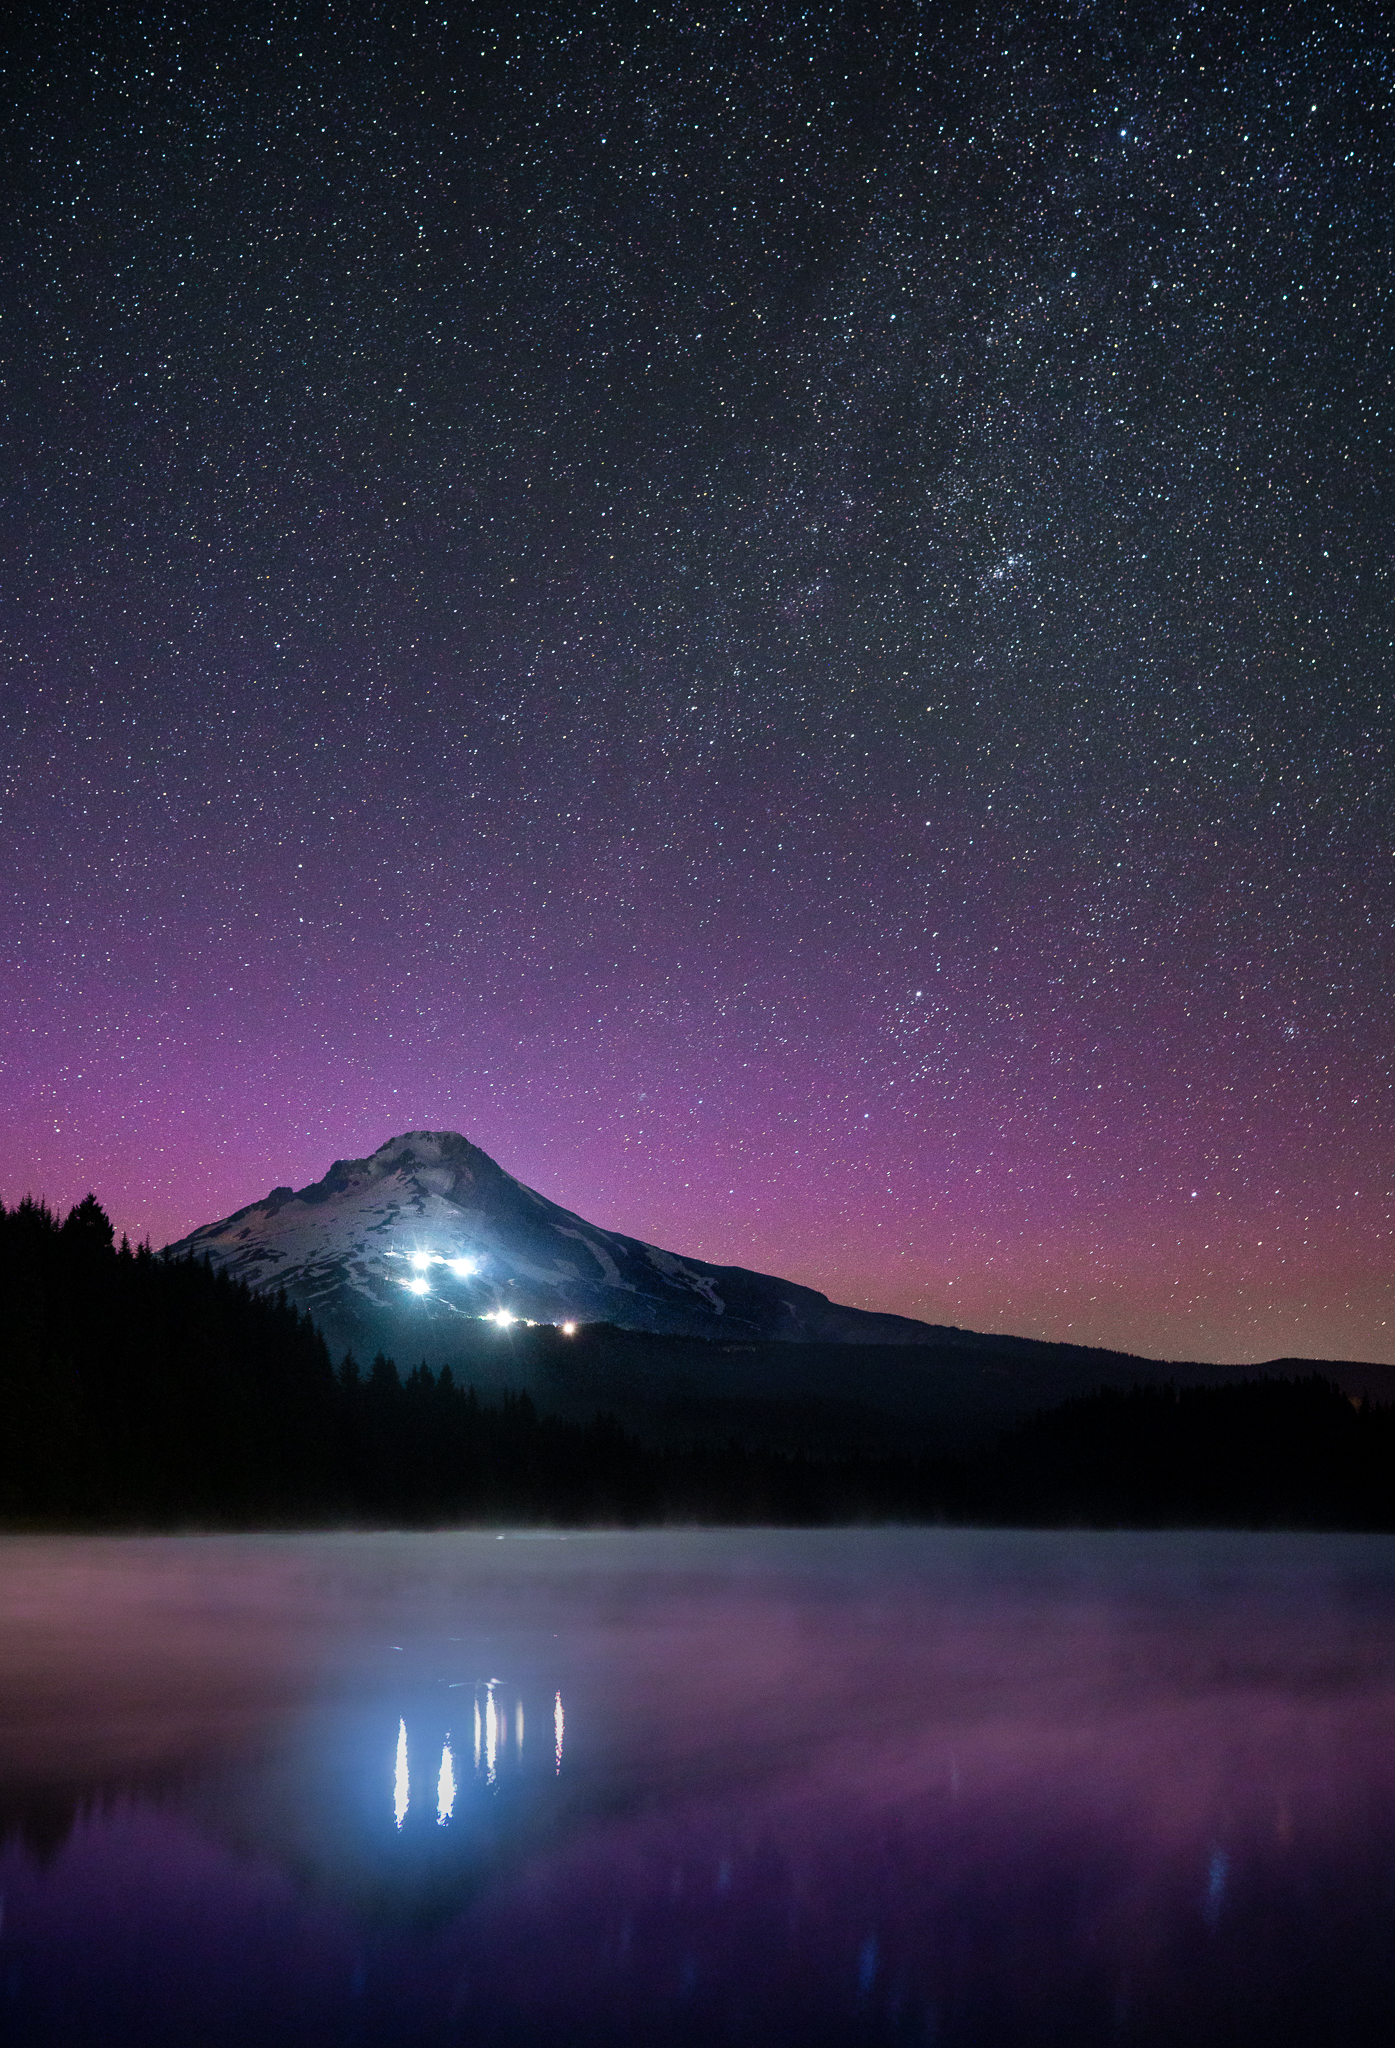 Trillium Lake Lights,  Sony A7RII ,  Sony Zeiss Distagon 35mm f/1.4  , 20 sec, f/2.8, ISO 3200